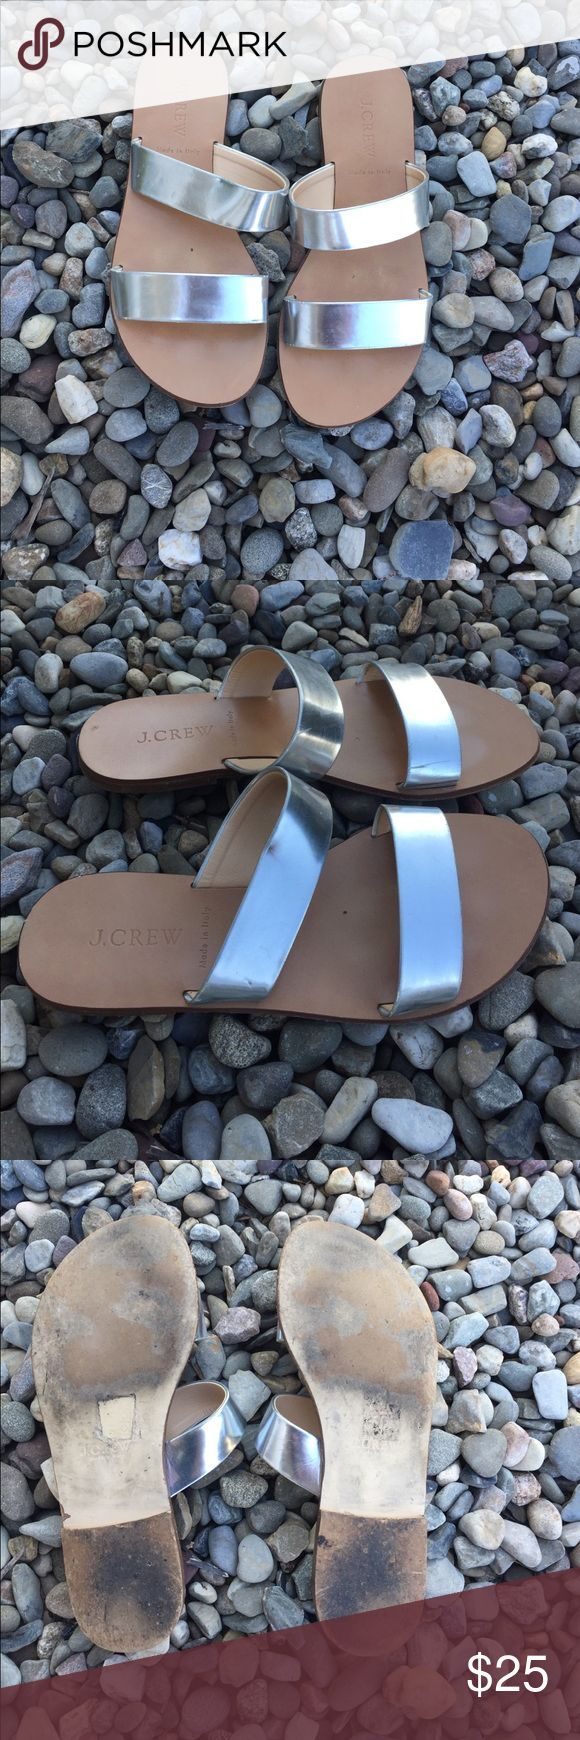 Jcrew silver flat sandals Metallic silver and leather sandals, in good condition! jcrew Shoes Sandals